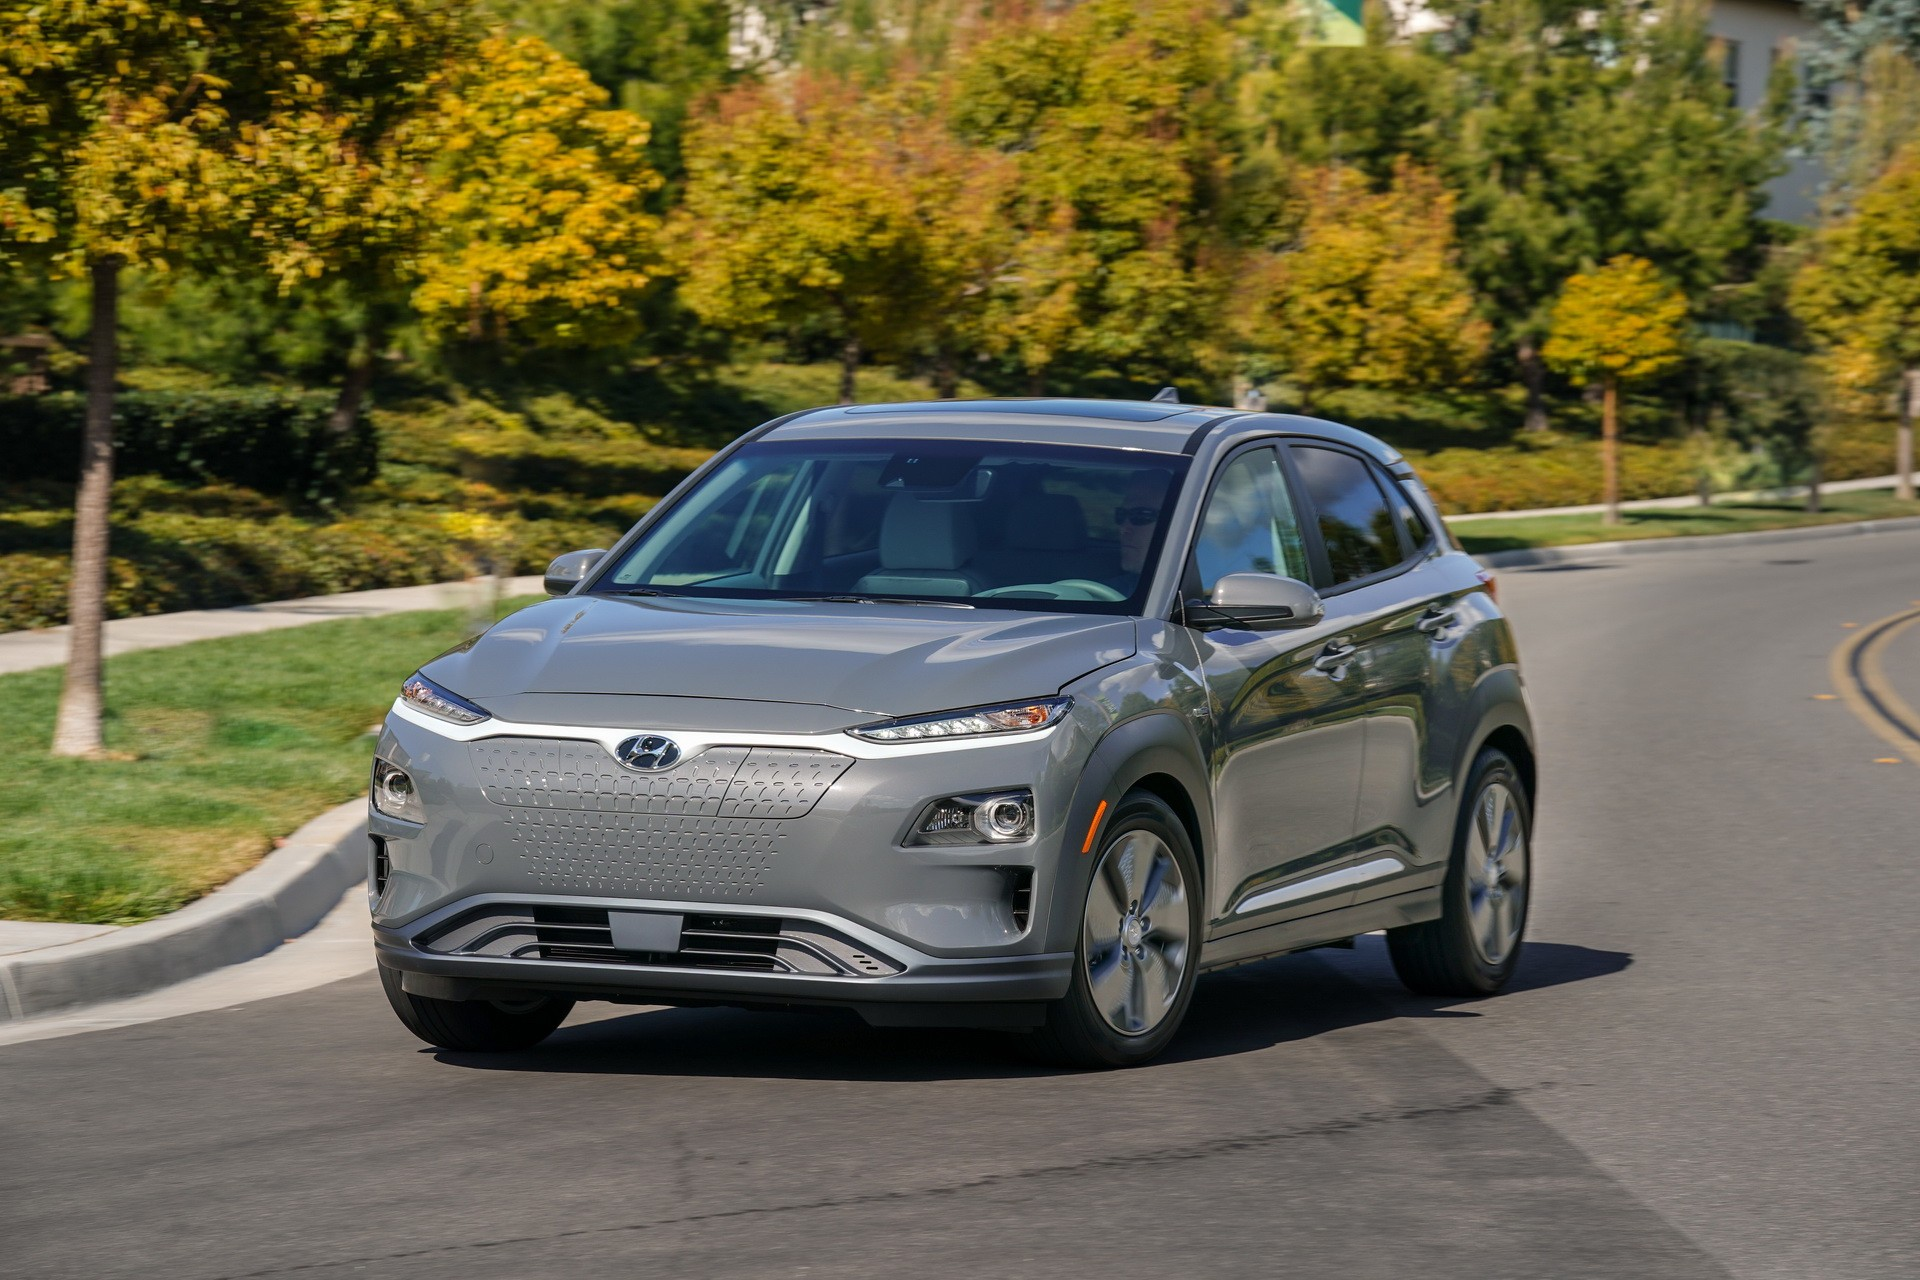 2020 Hyundai Kona Electric Upgraded With 11 Kw Charger